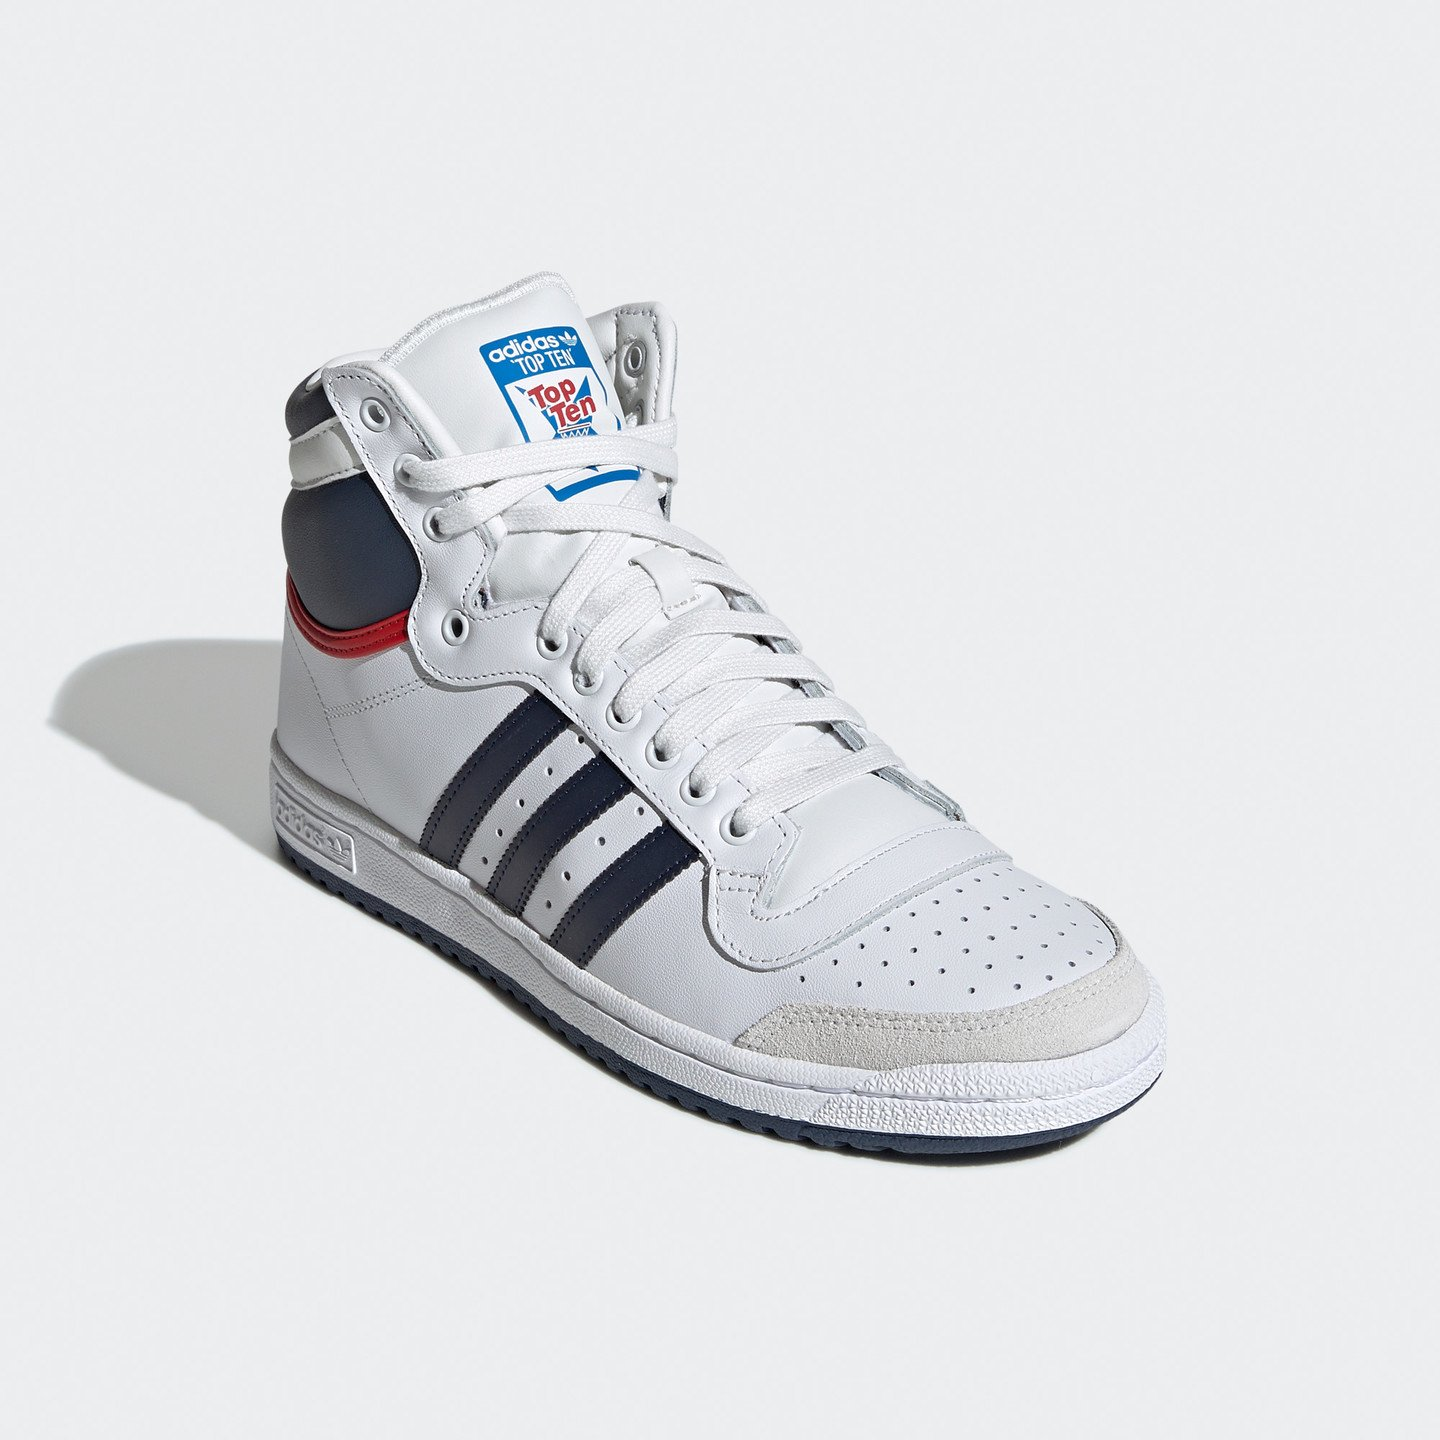 Adidas Top Ten Hi OG White / Navy / Red D65161